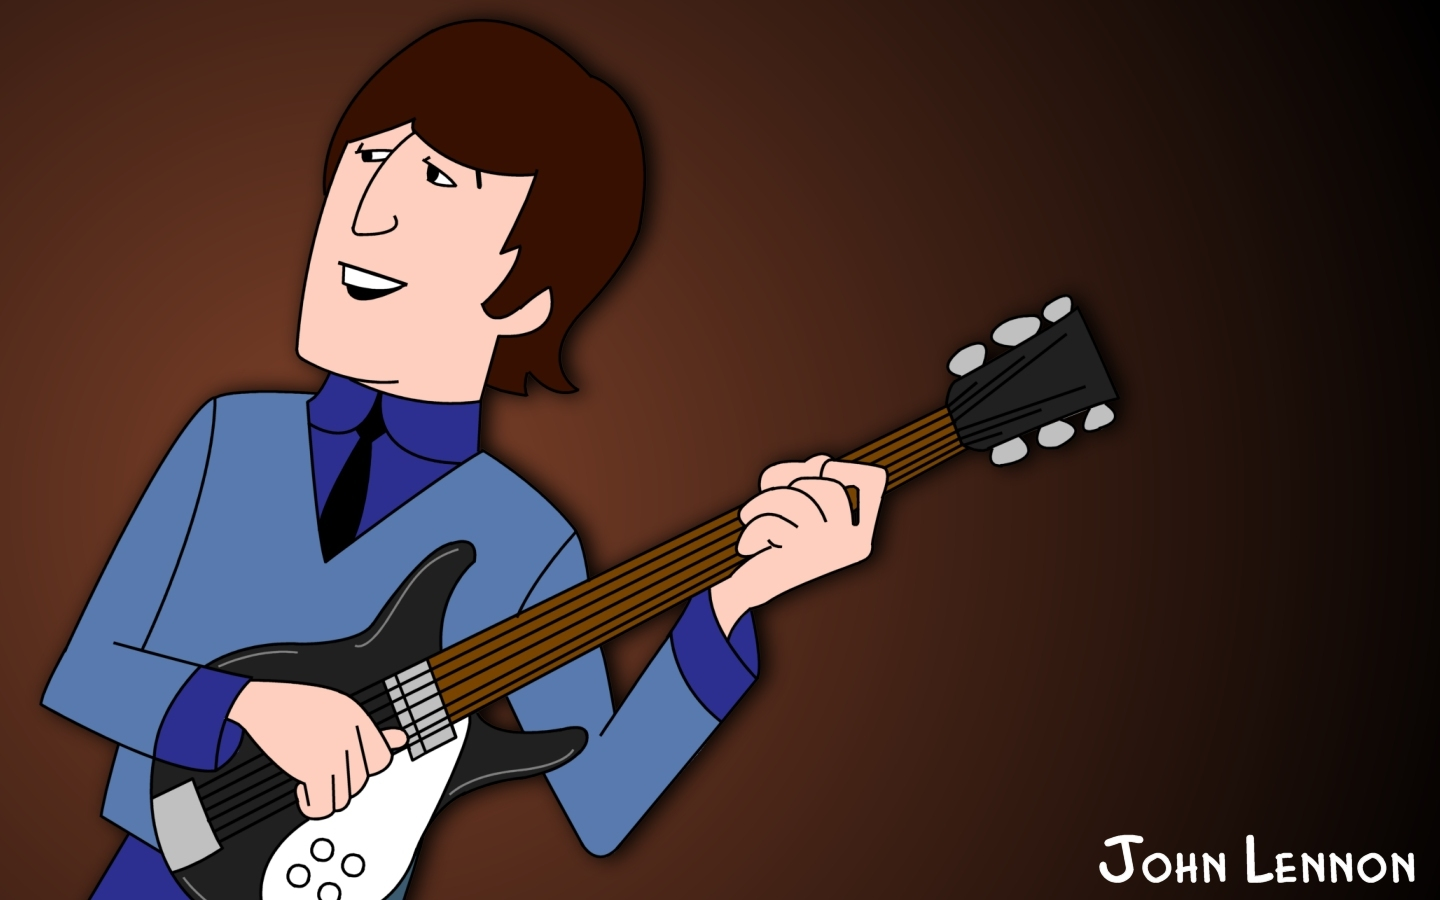 http://www.startrekanimated.com/ys_car_beatles_wall04.jpg